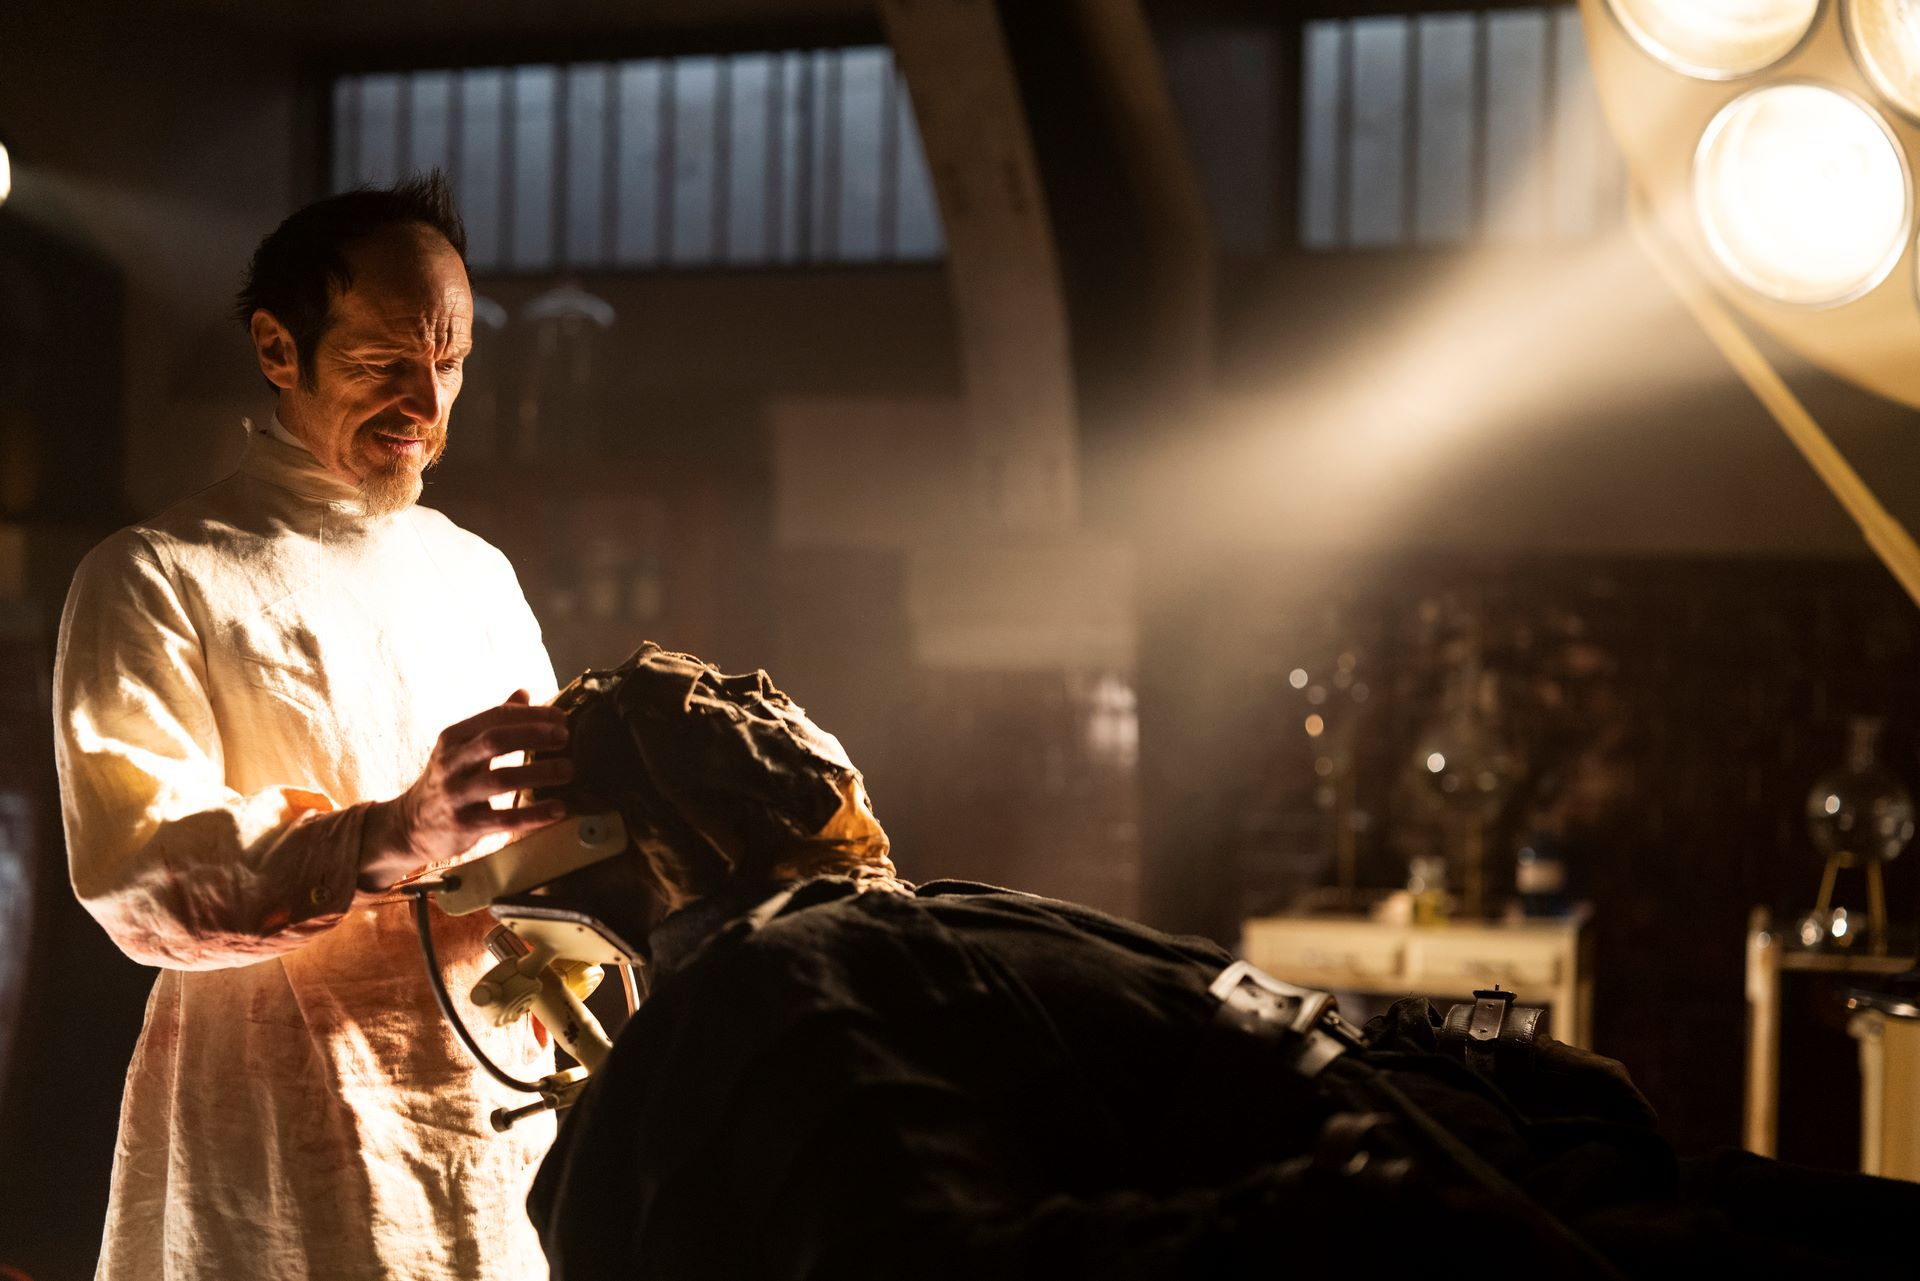 Denis O'Hare in 'The Nevers'